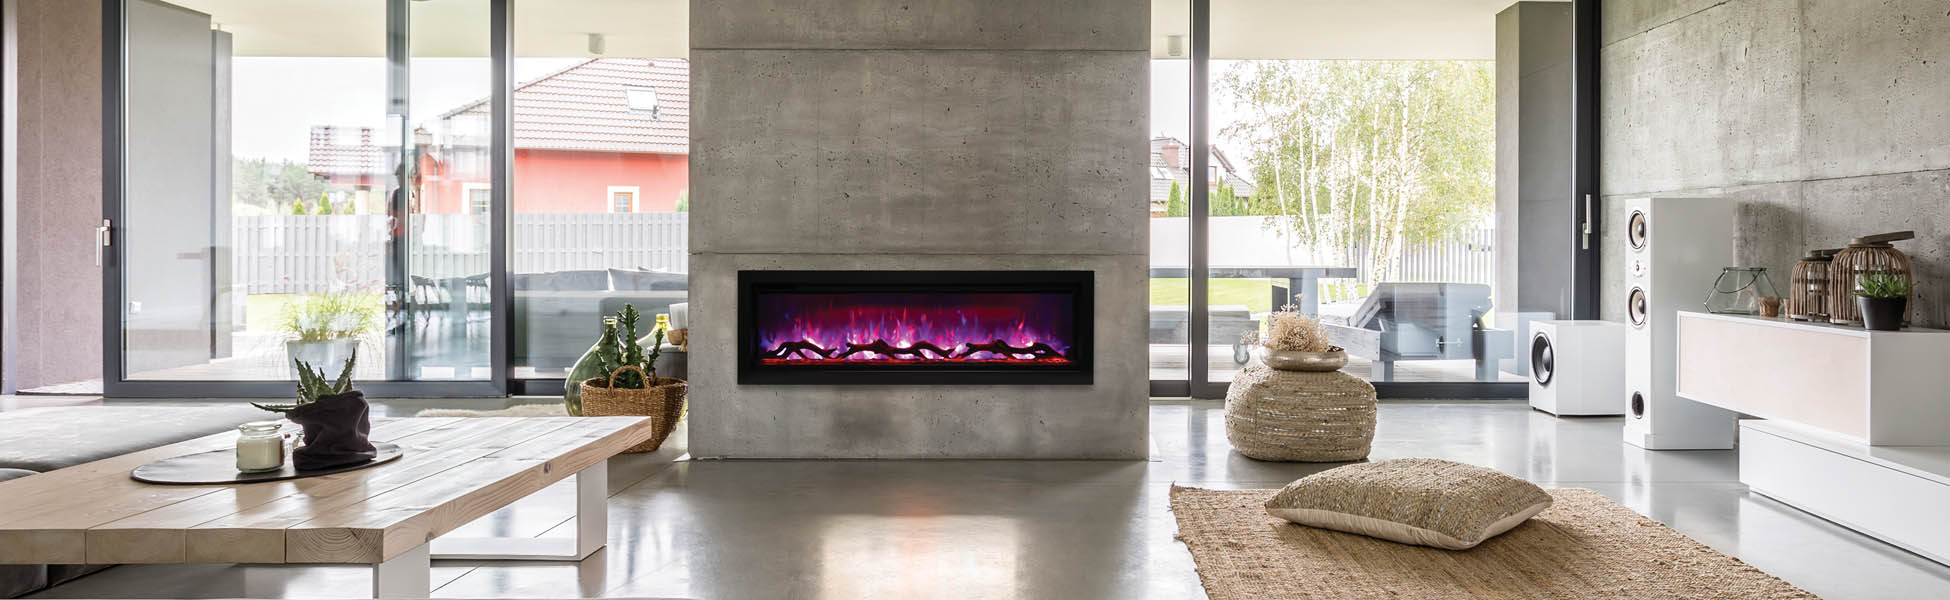 SYM-50 electric fireplace